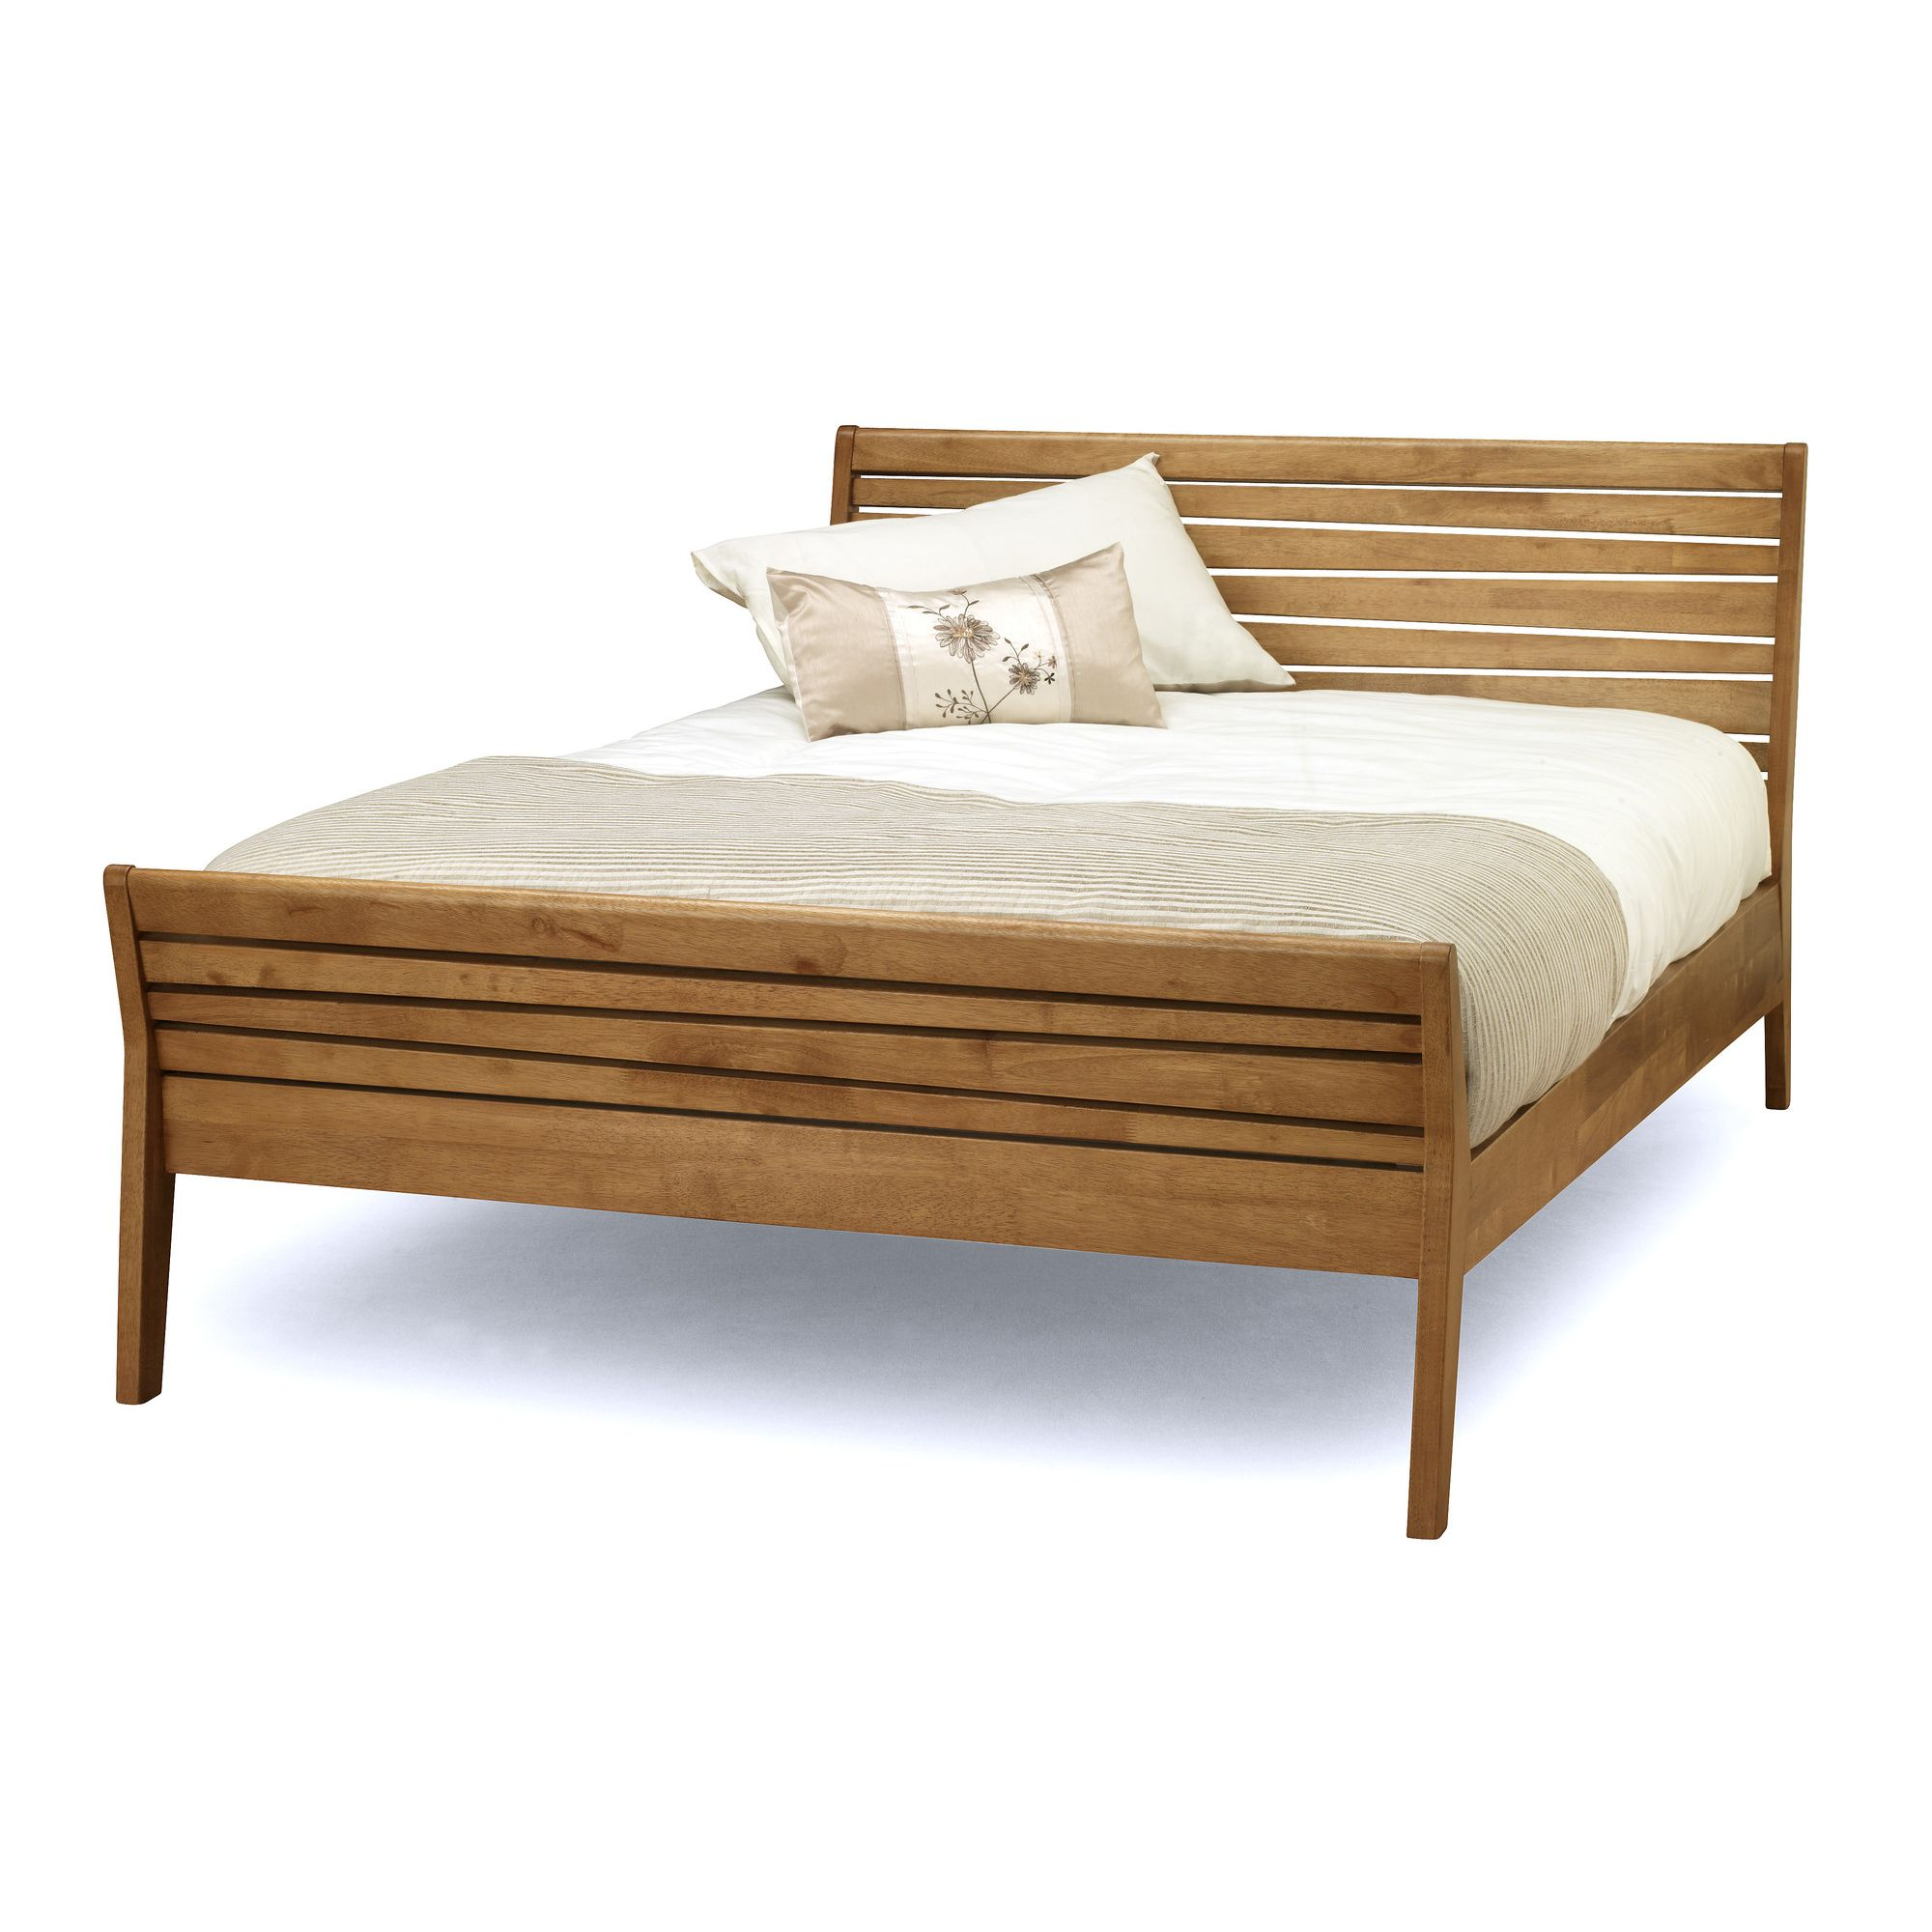 Serene Furnishings Zahra Bed - Honey Oak - Single at Tesco Direct